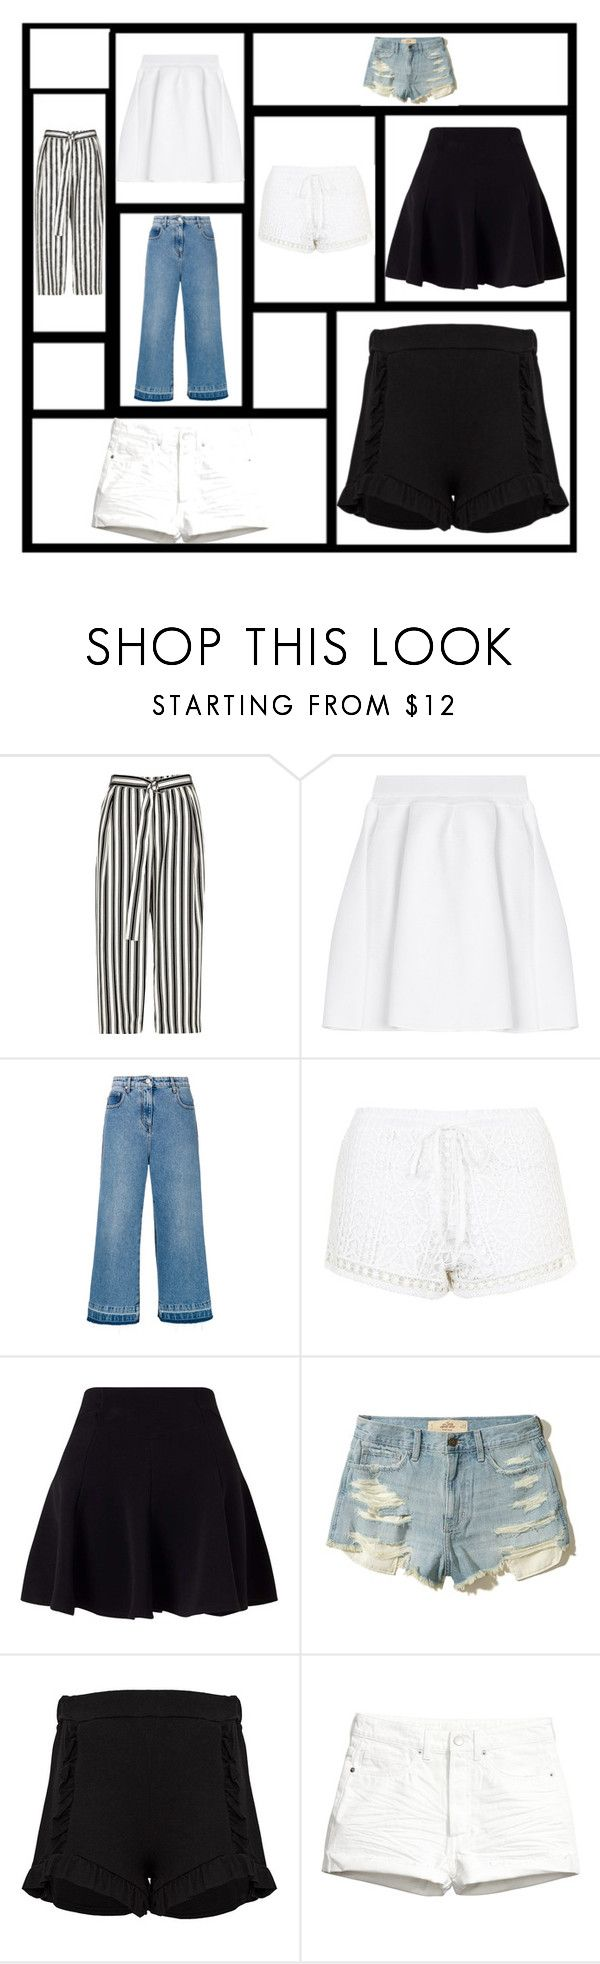 """TEN INFERIOR"" by aguiar-pilutti on Polyvore featuring moda, River Island, malo, MSGM, Topshop, Miss Selfridge, Hollister Co. y H&M"